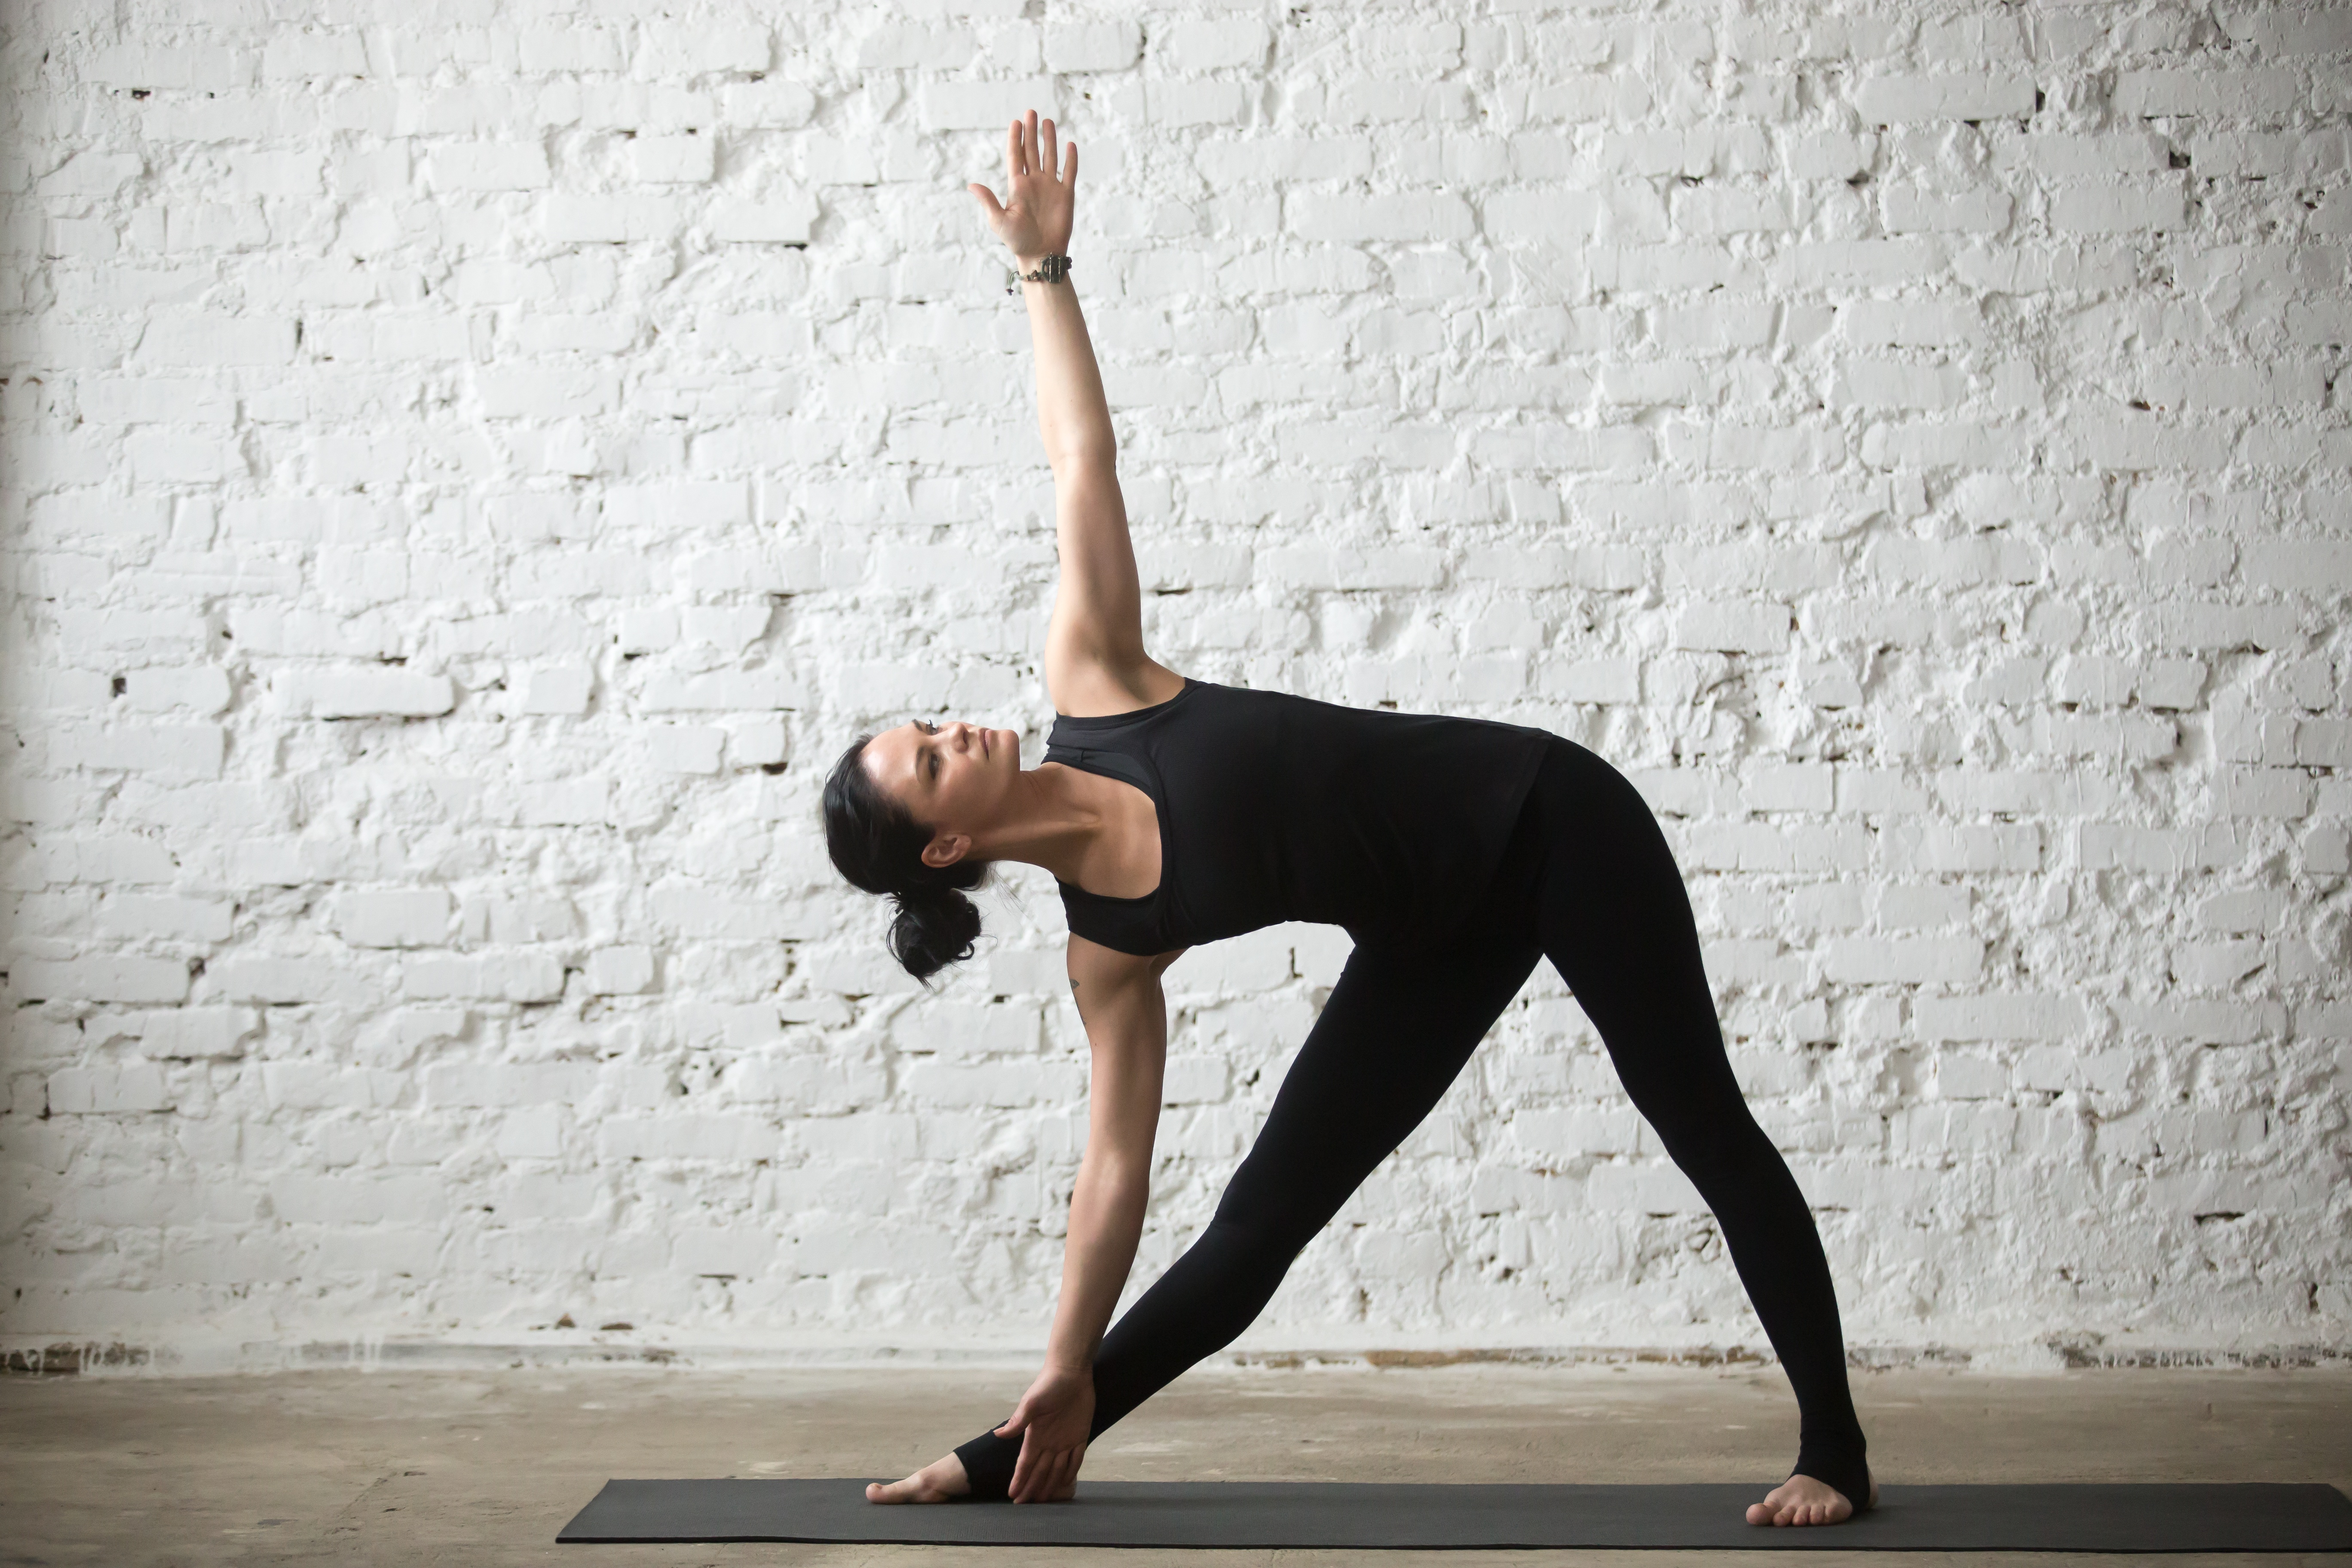 6 Yoga Poses to try for Back Pain - Triangle Pose